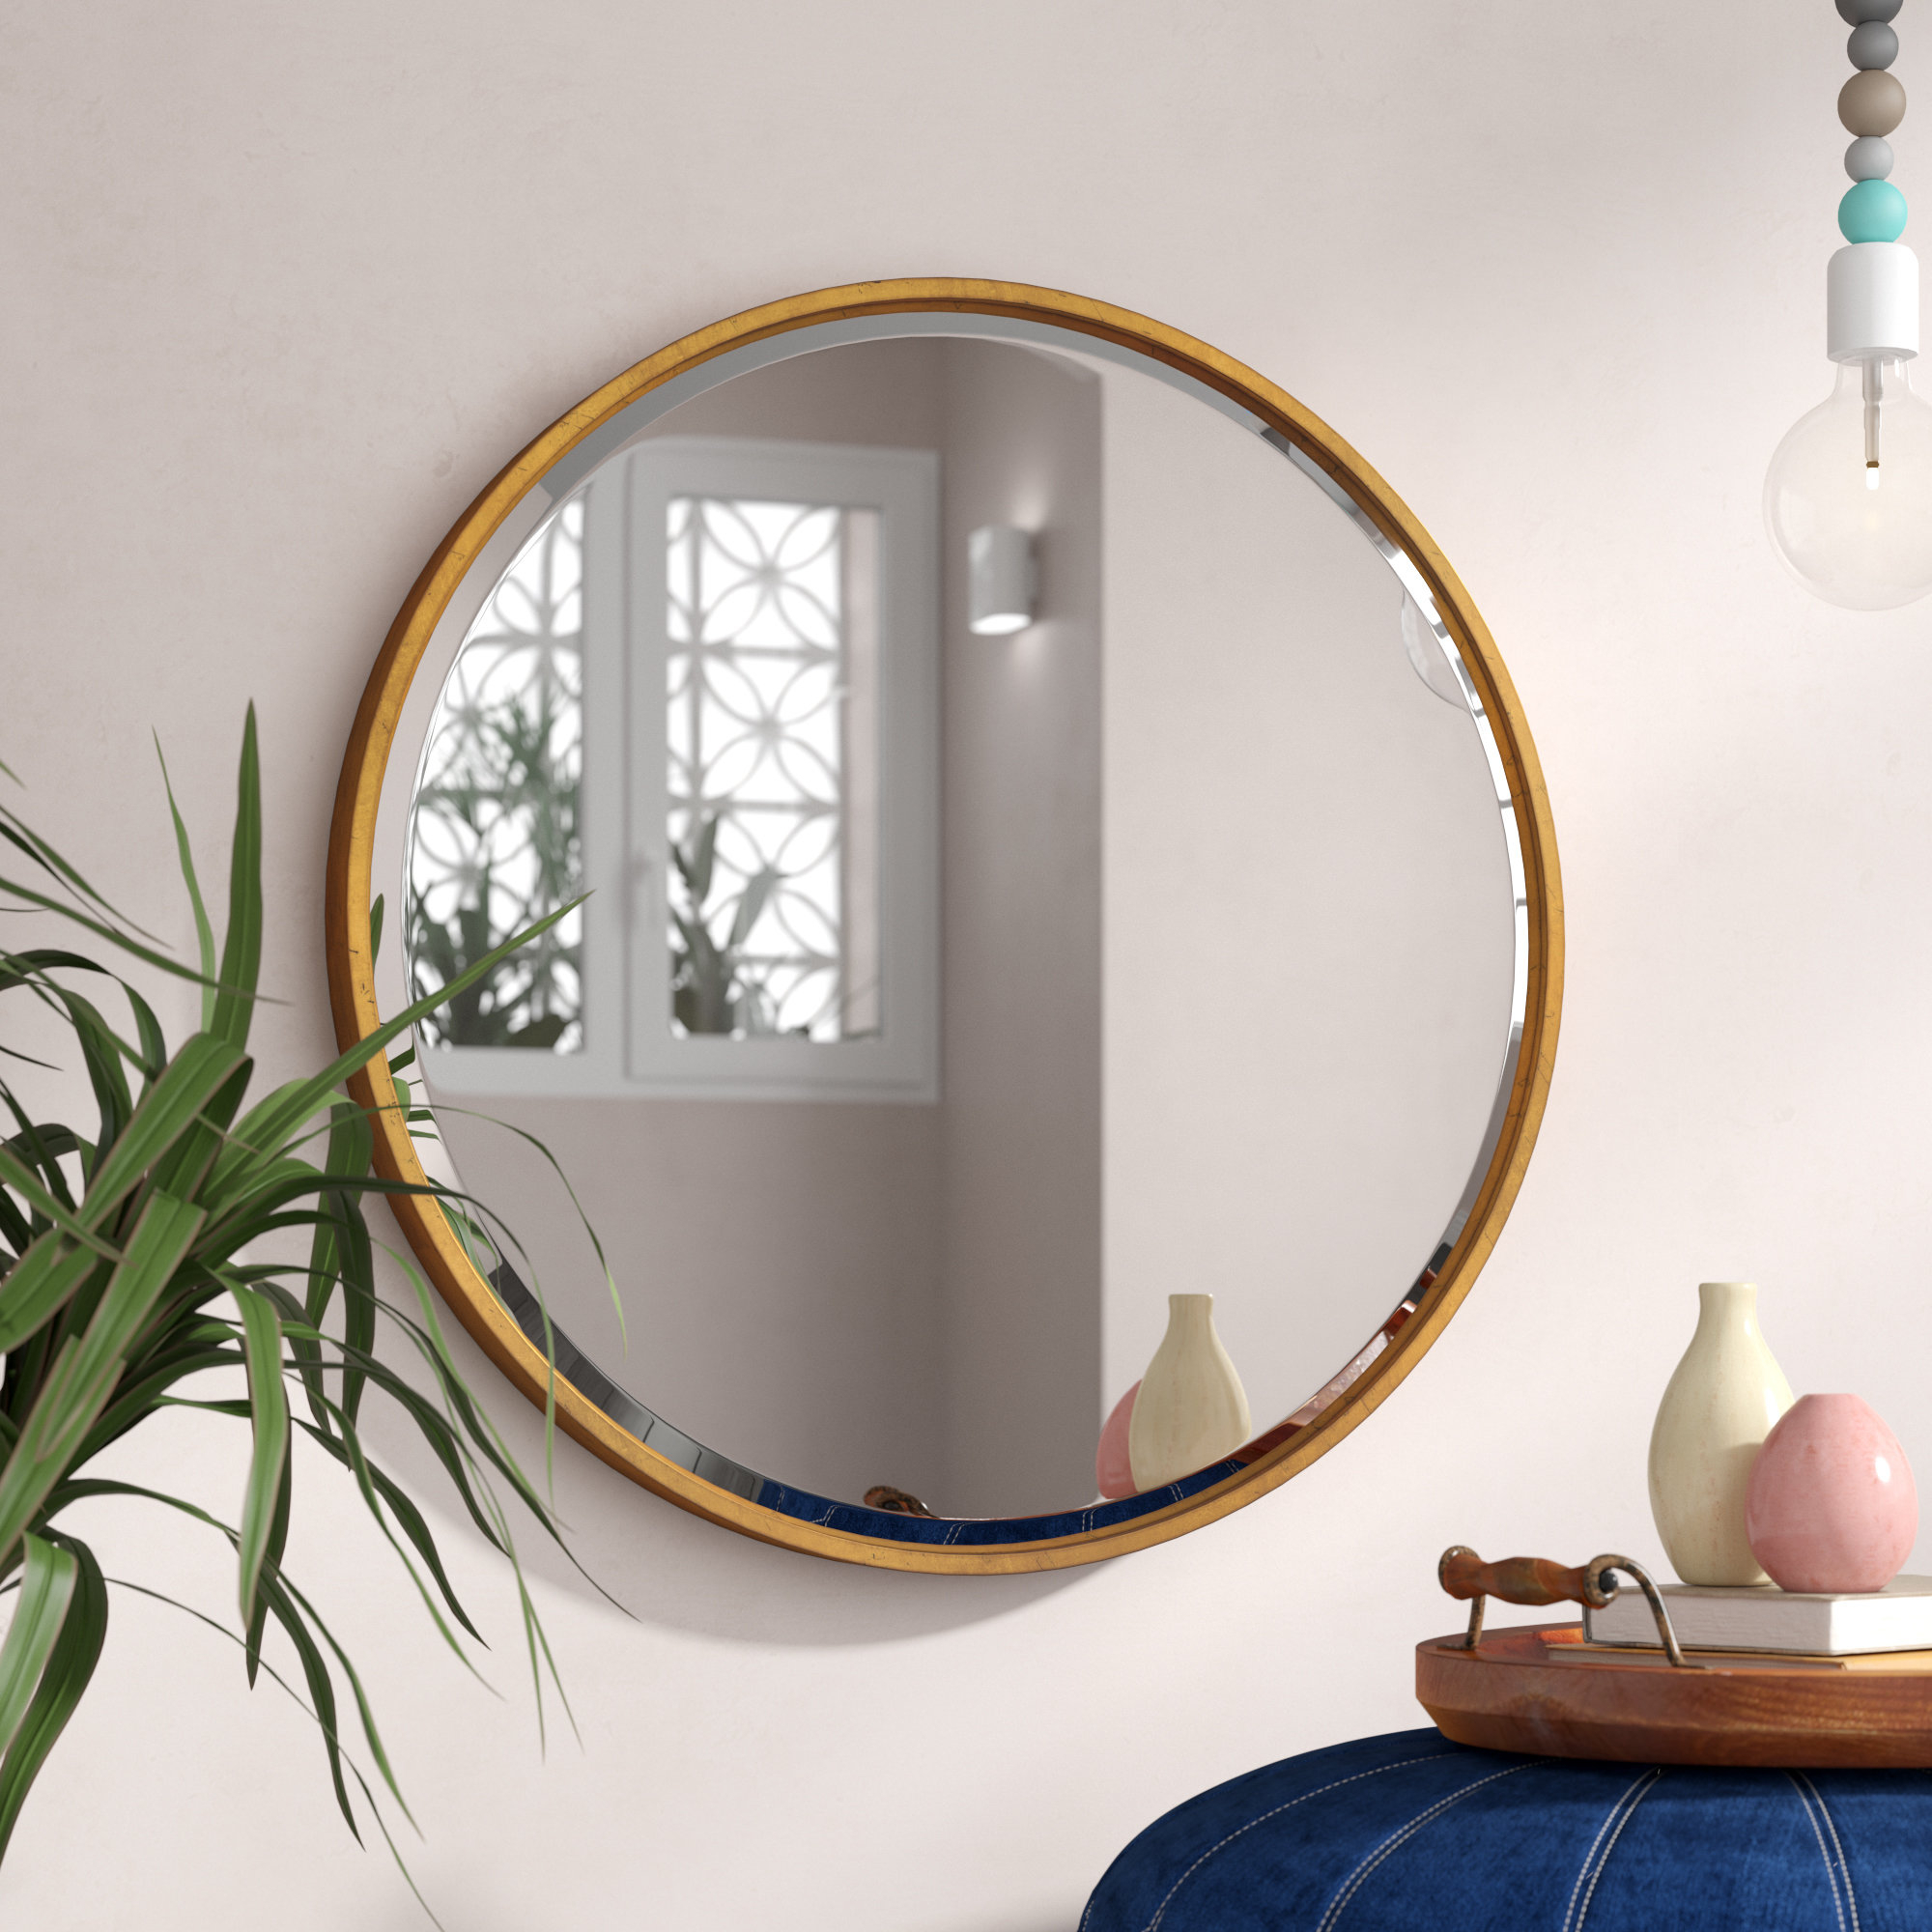 2019 Jamie Modern & Contemporary Beveled Wall Mirror Intended For Mahanoy Modern And Contemporary Distressed Accent Mirrors (View 1 of 20)